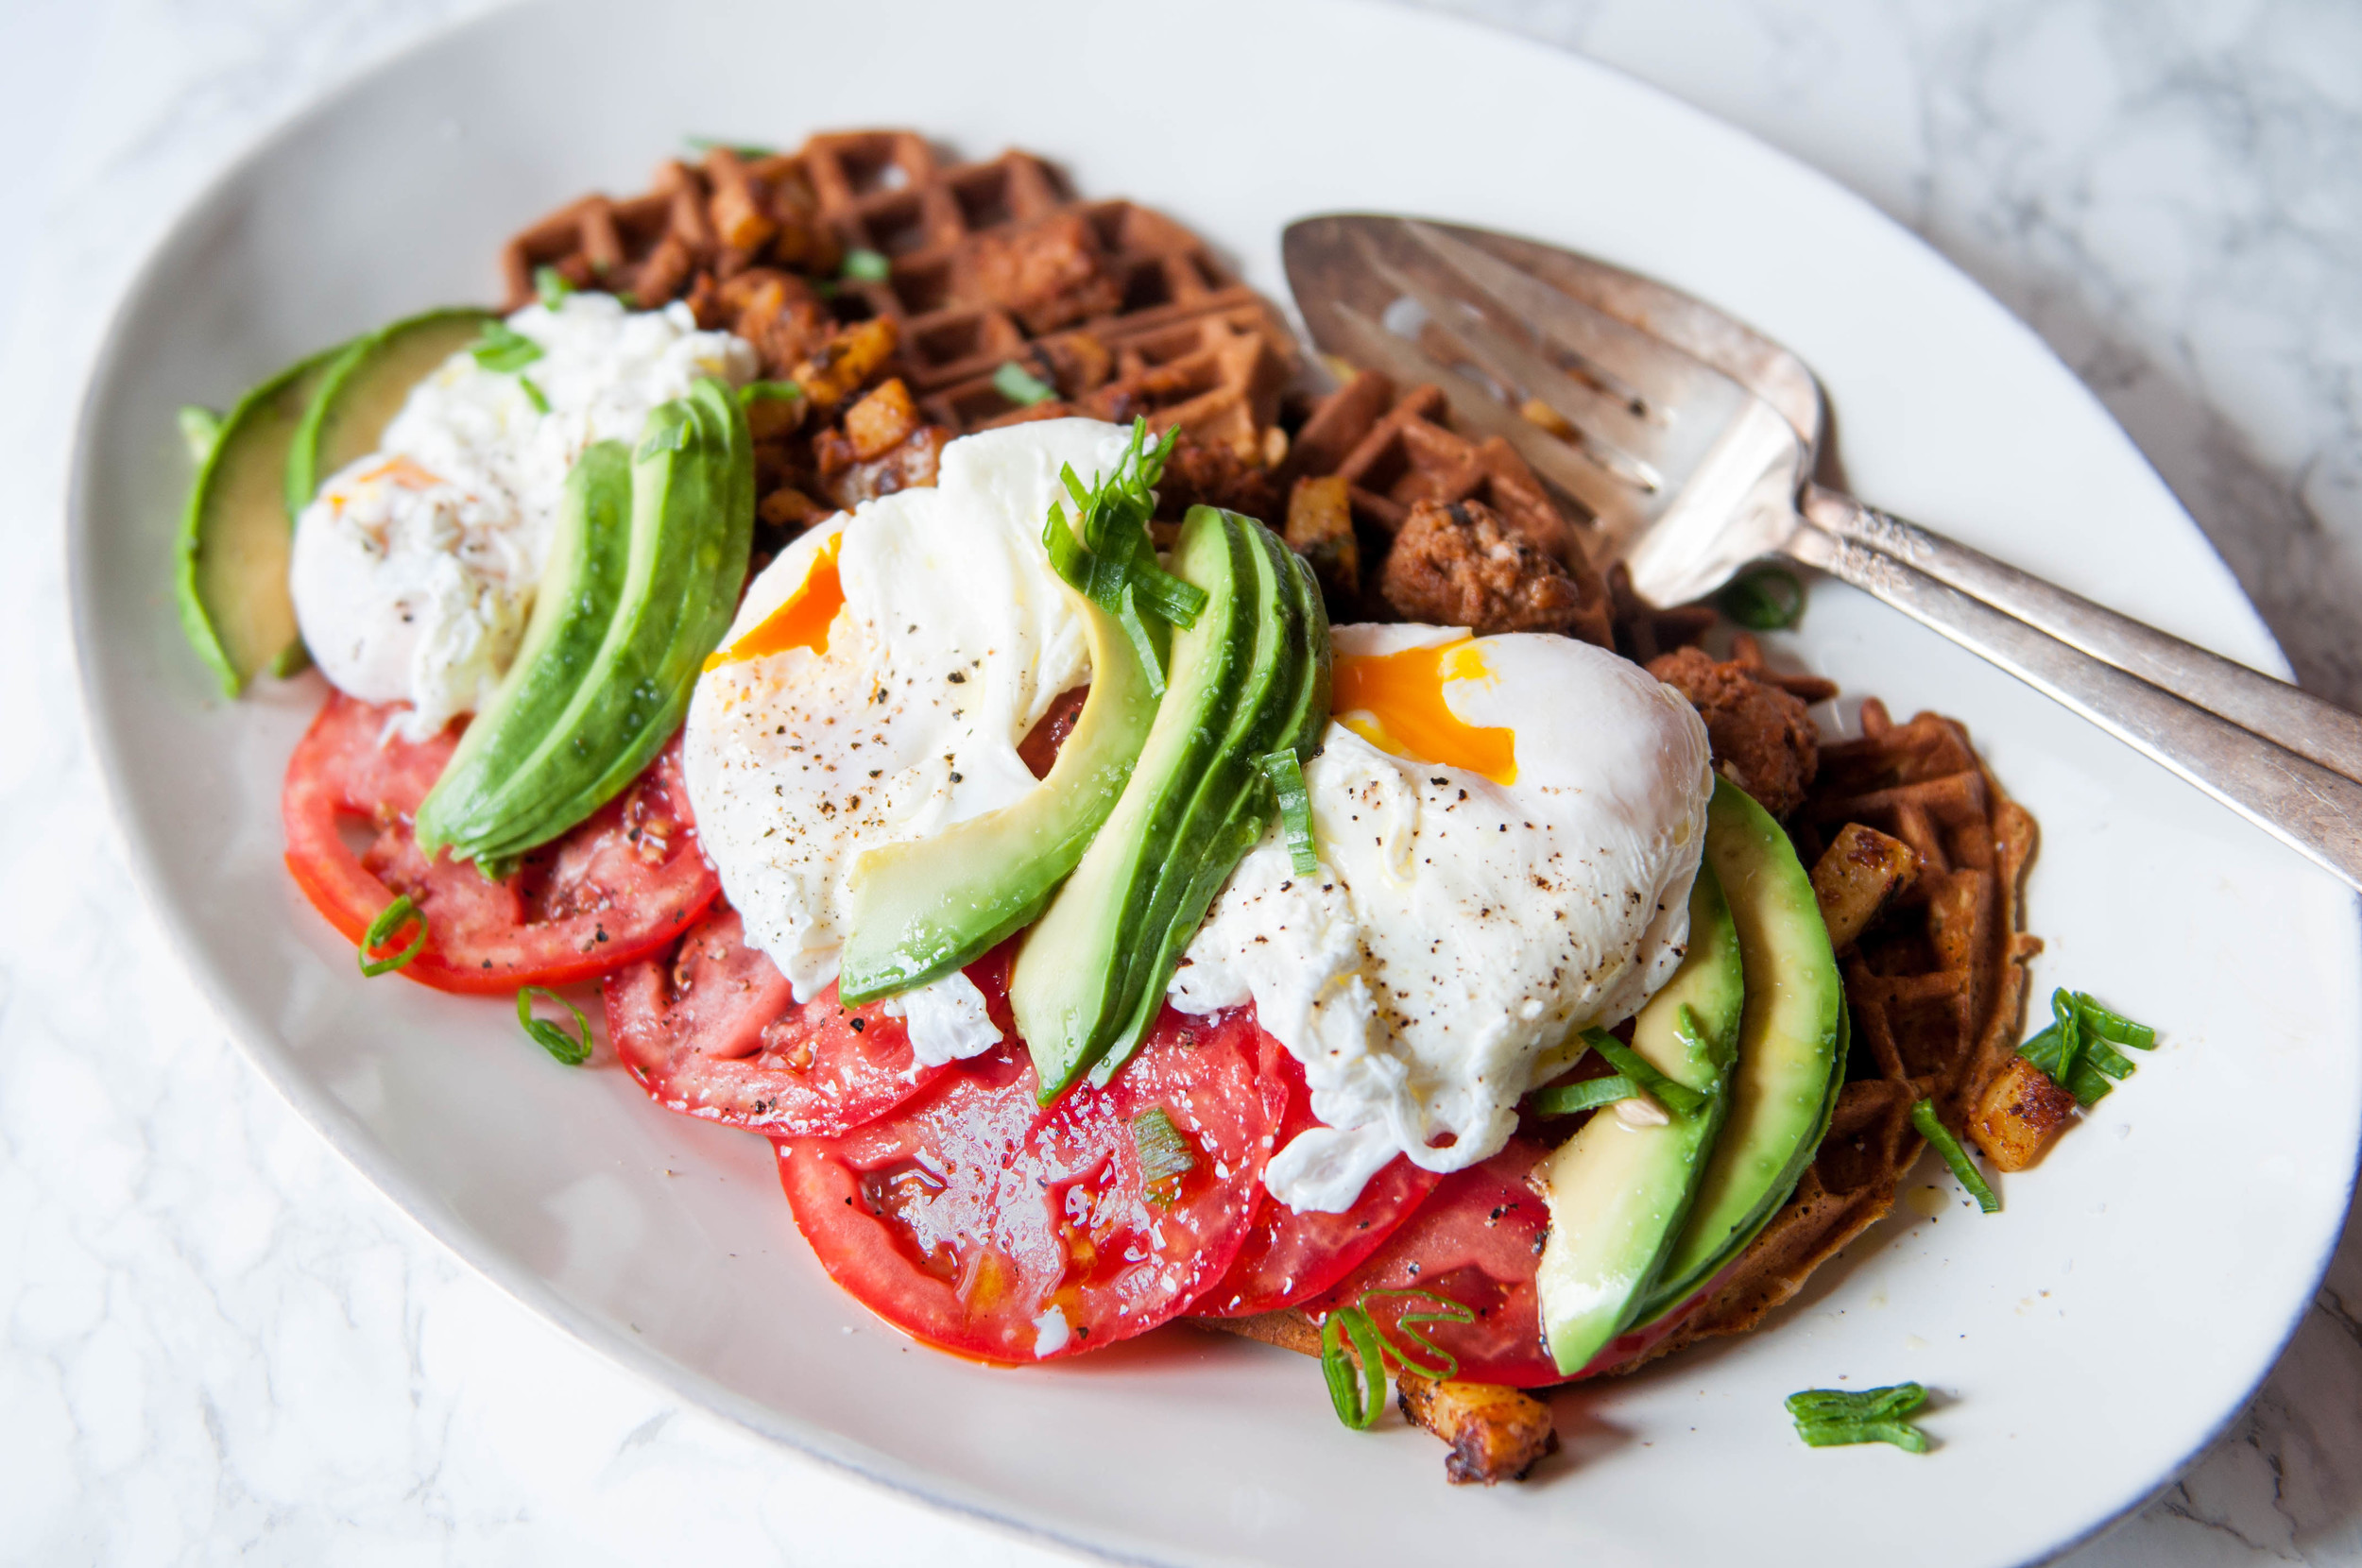 RED MILLET AND EINKORN WAFFLES FOR BRUNCH